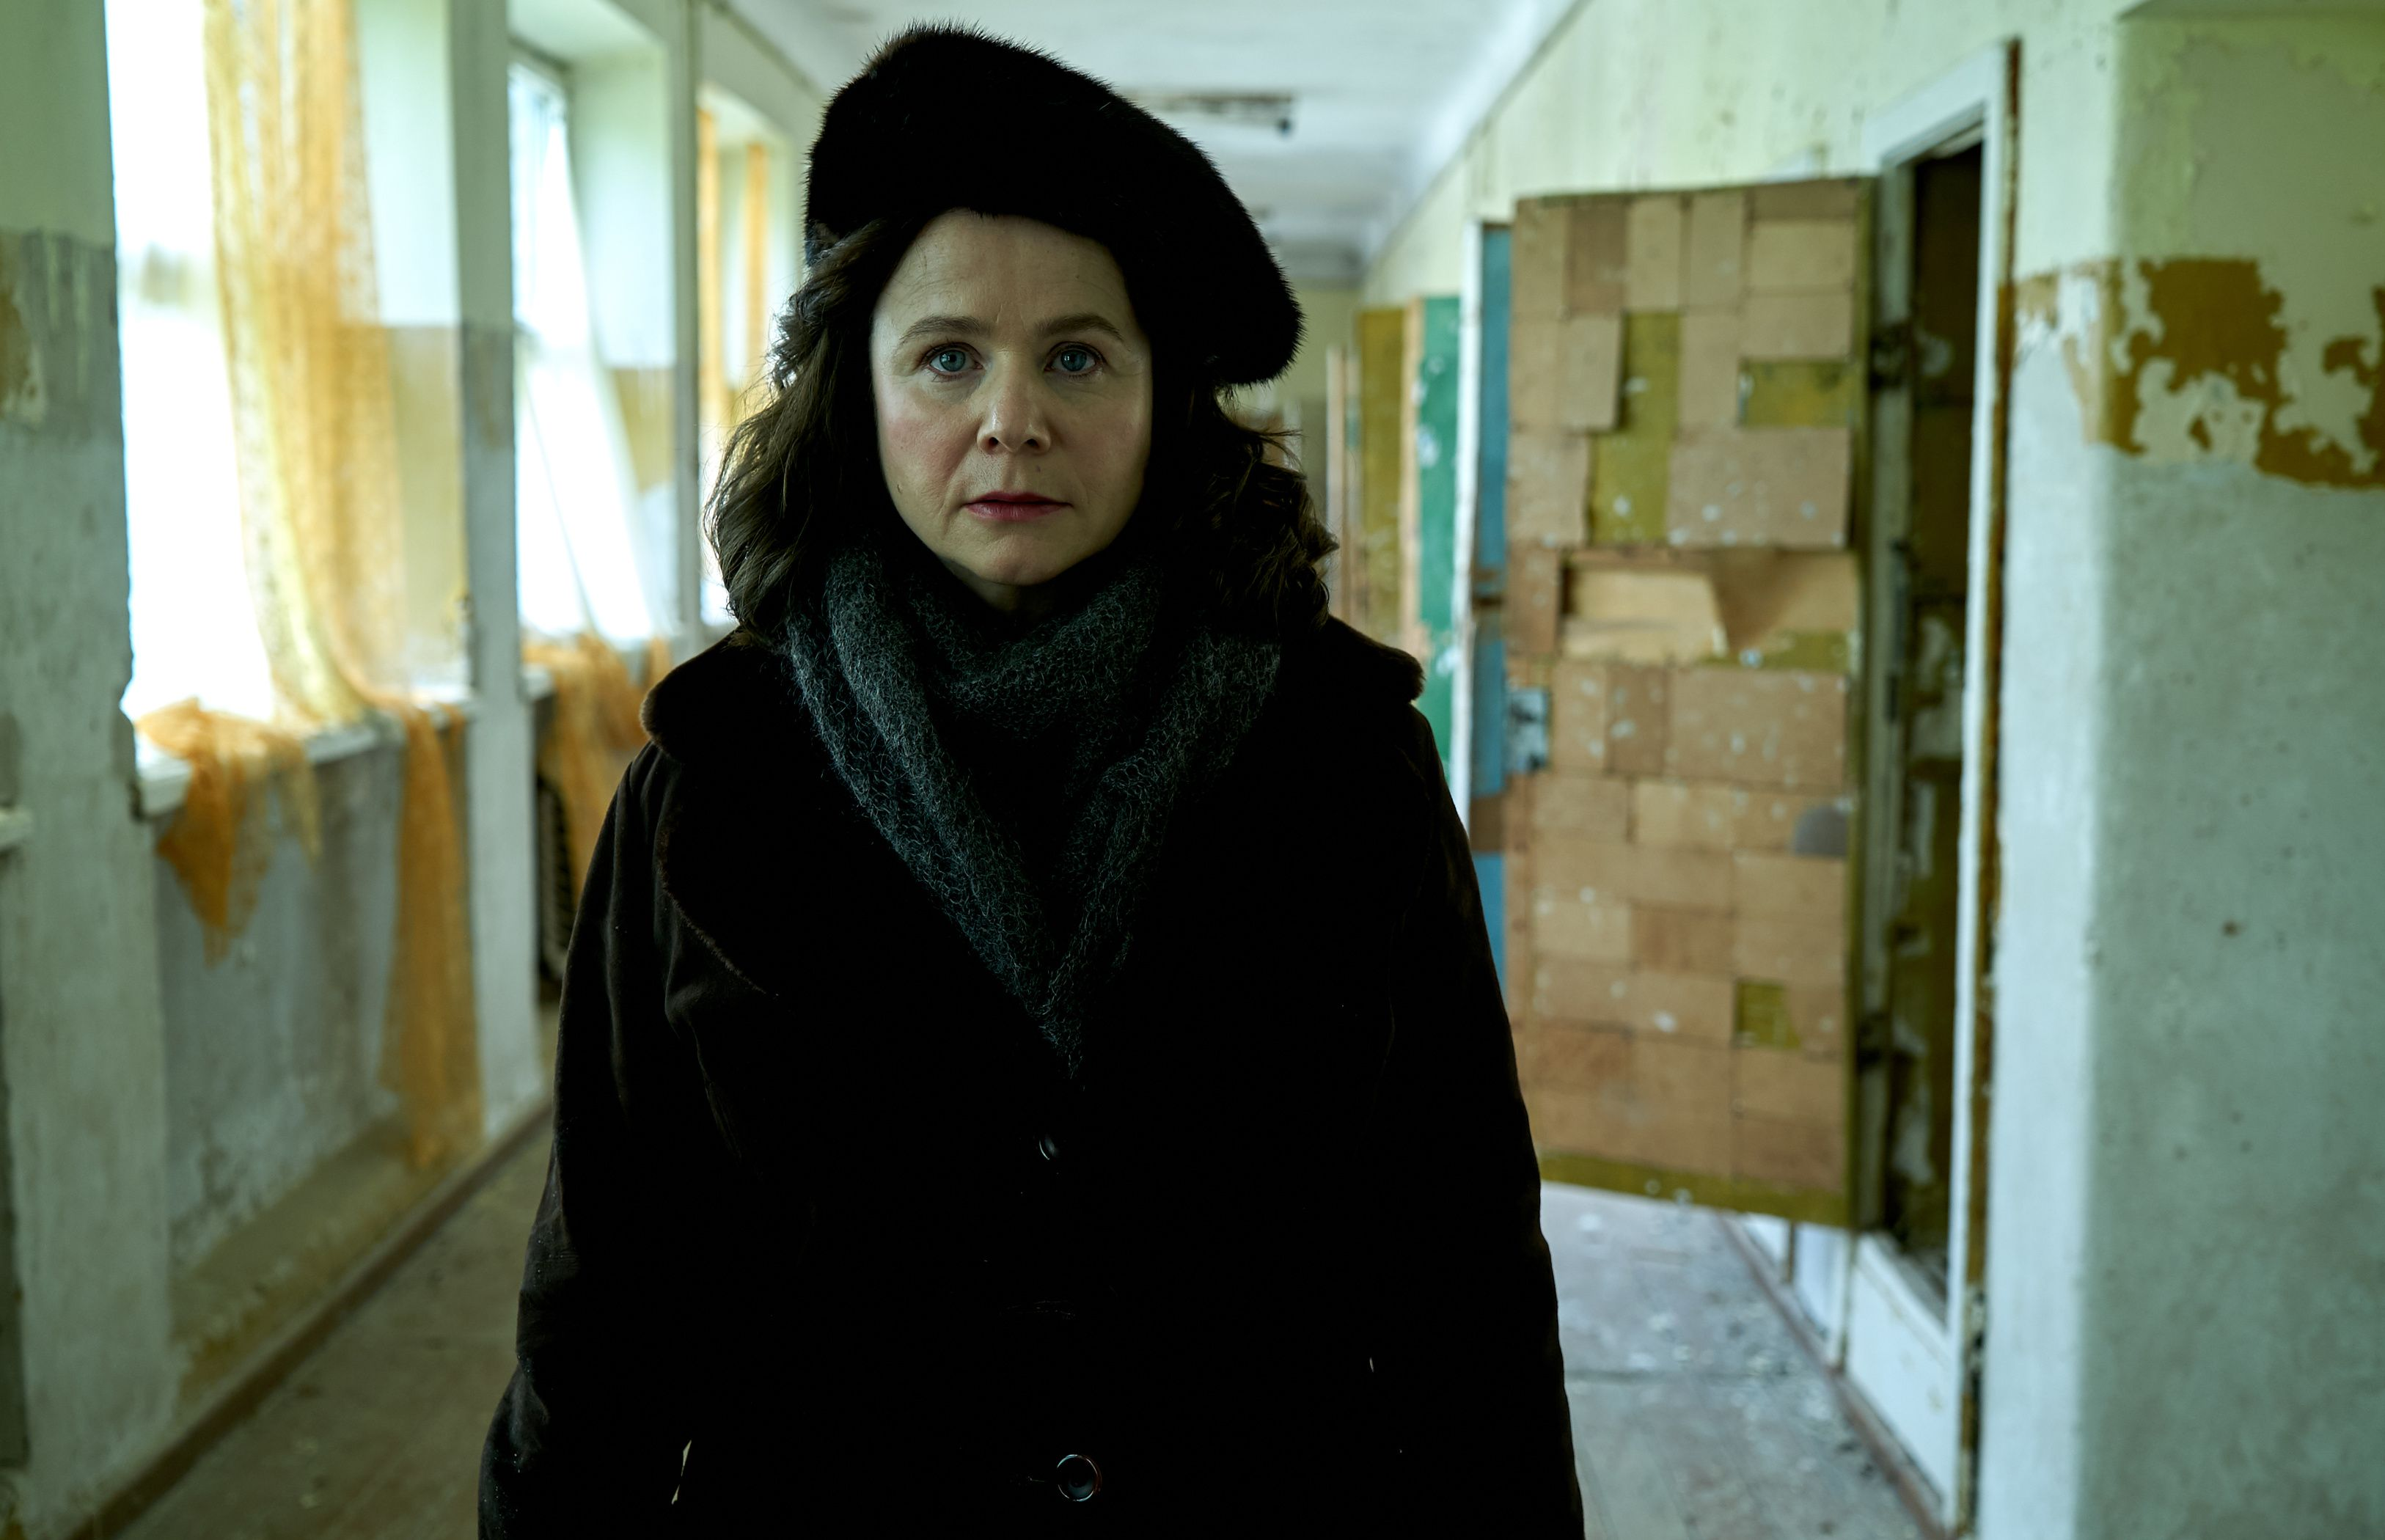 Chernobyl's Emily Watson to star in new ITV thriller Too Close